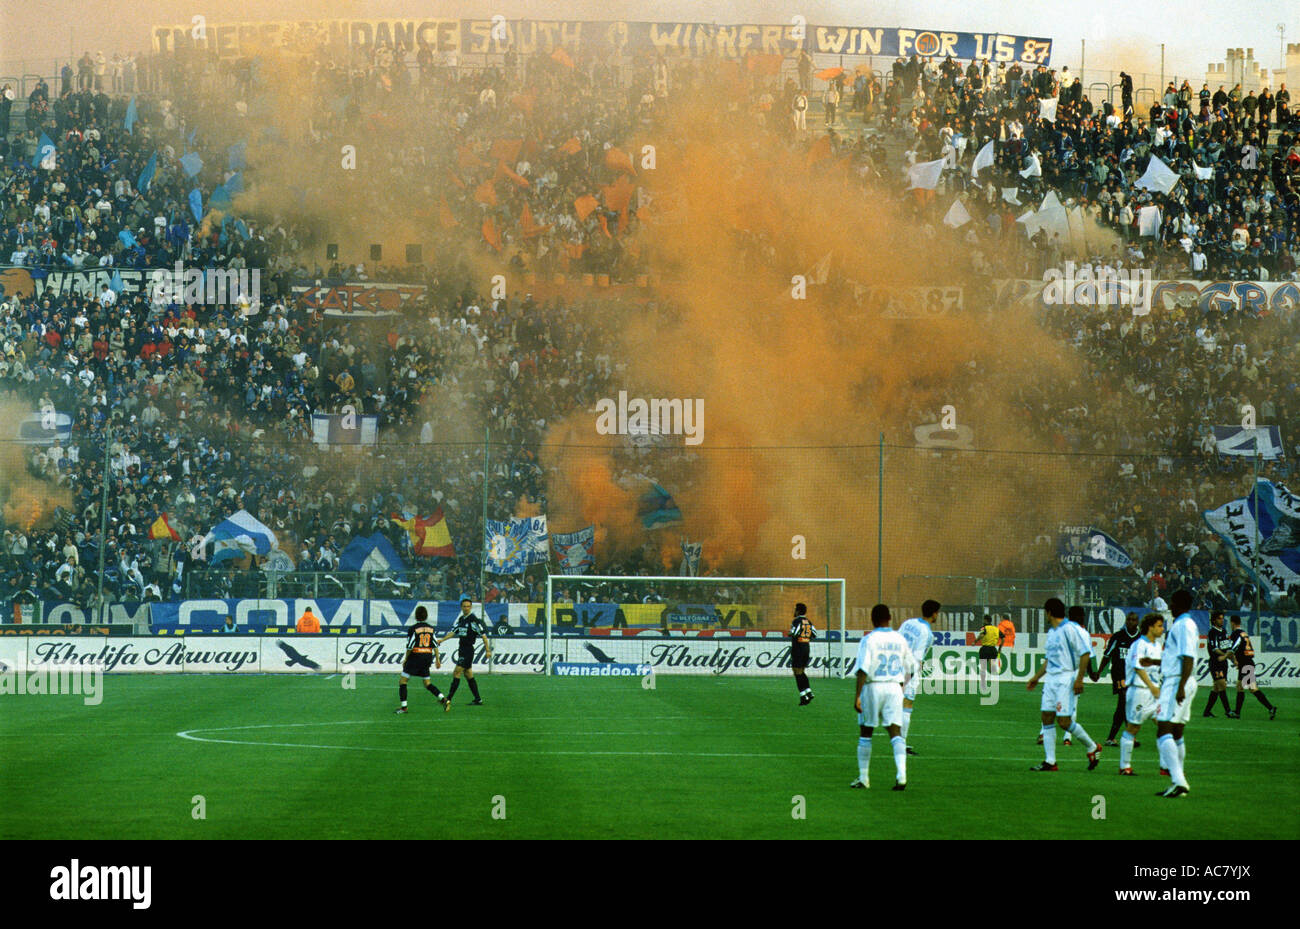 A League game at the Stade Velodrome, home to Olympique Marseille, France. - Stock Image